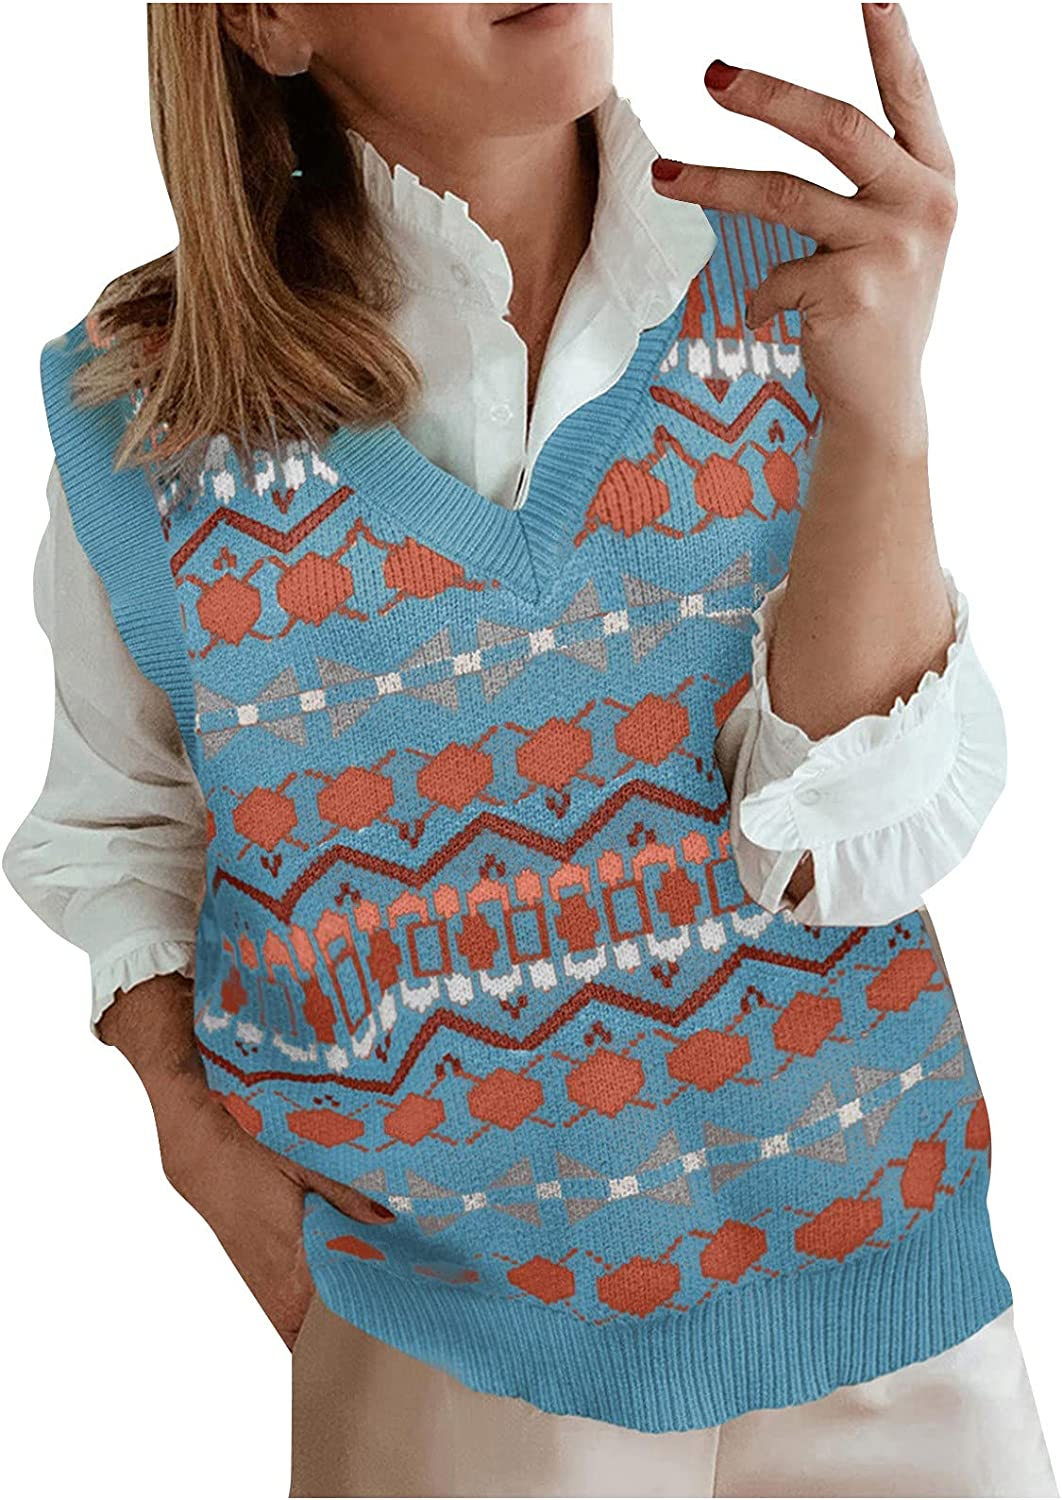 Women's Fashion Knitted Vest Sleeveless V-Neck Ethnic Style Vintage Sweater Knitwear Tank Top